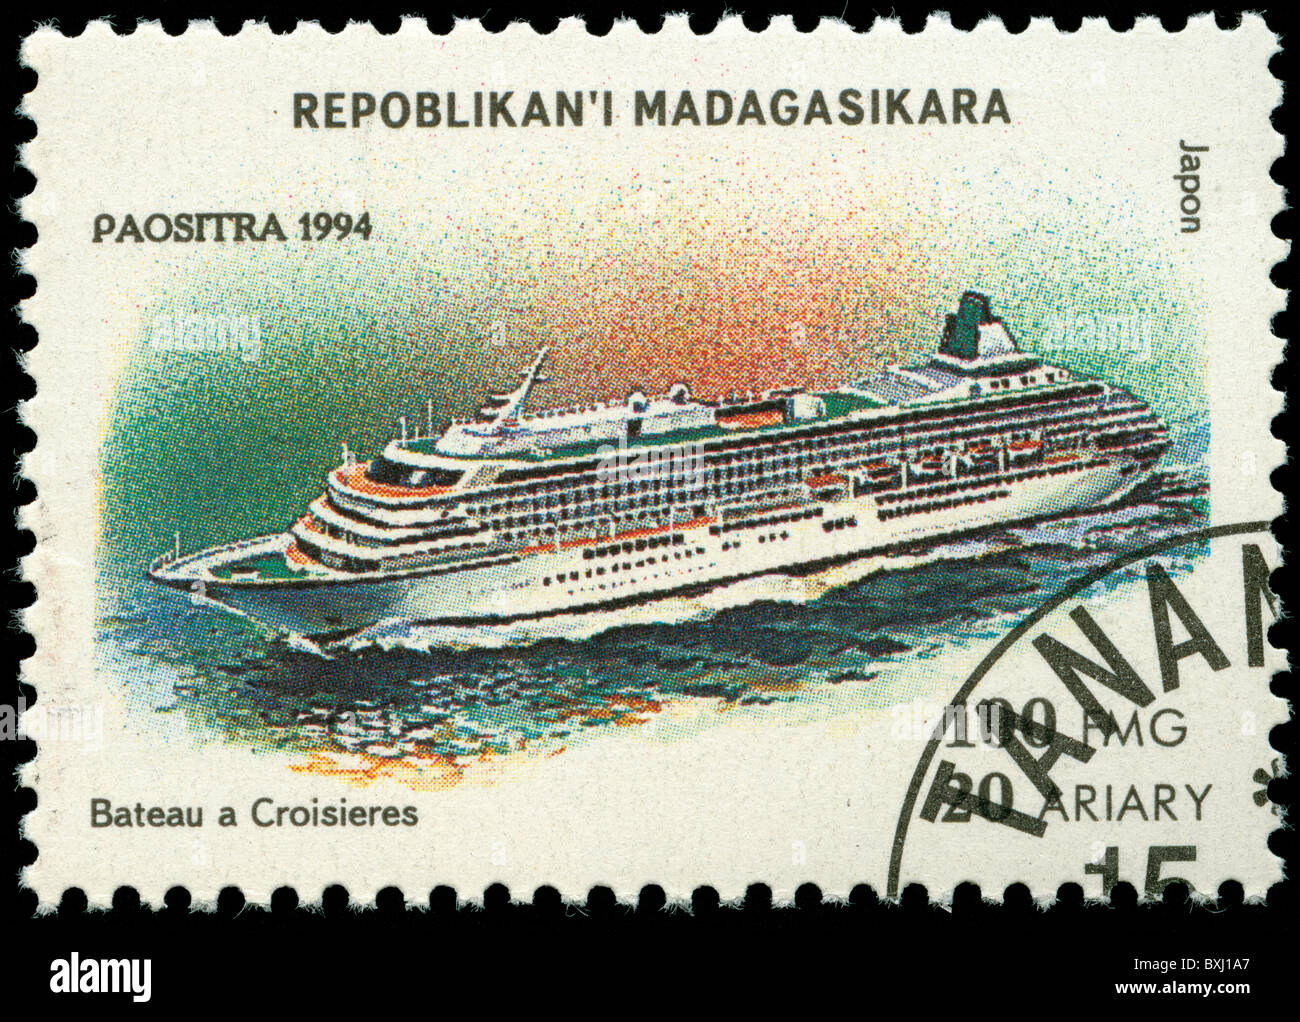 Postage stamp from Madagascar with picture of the passenger liner 'Japon' - Stock Image